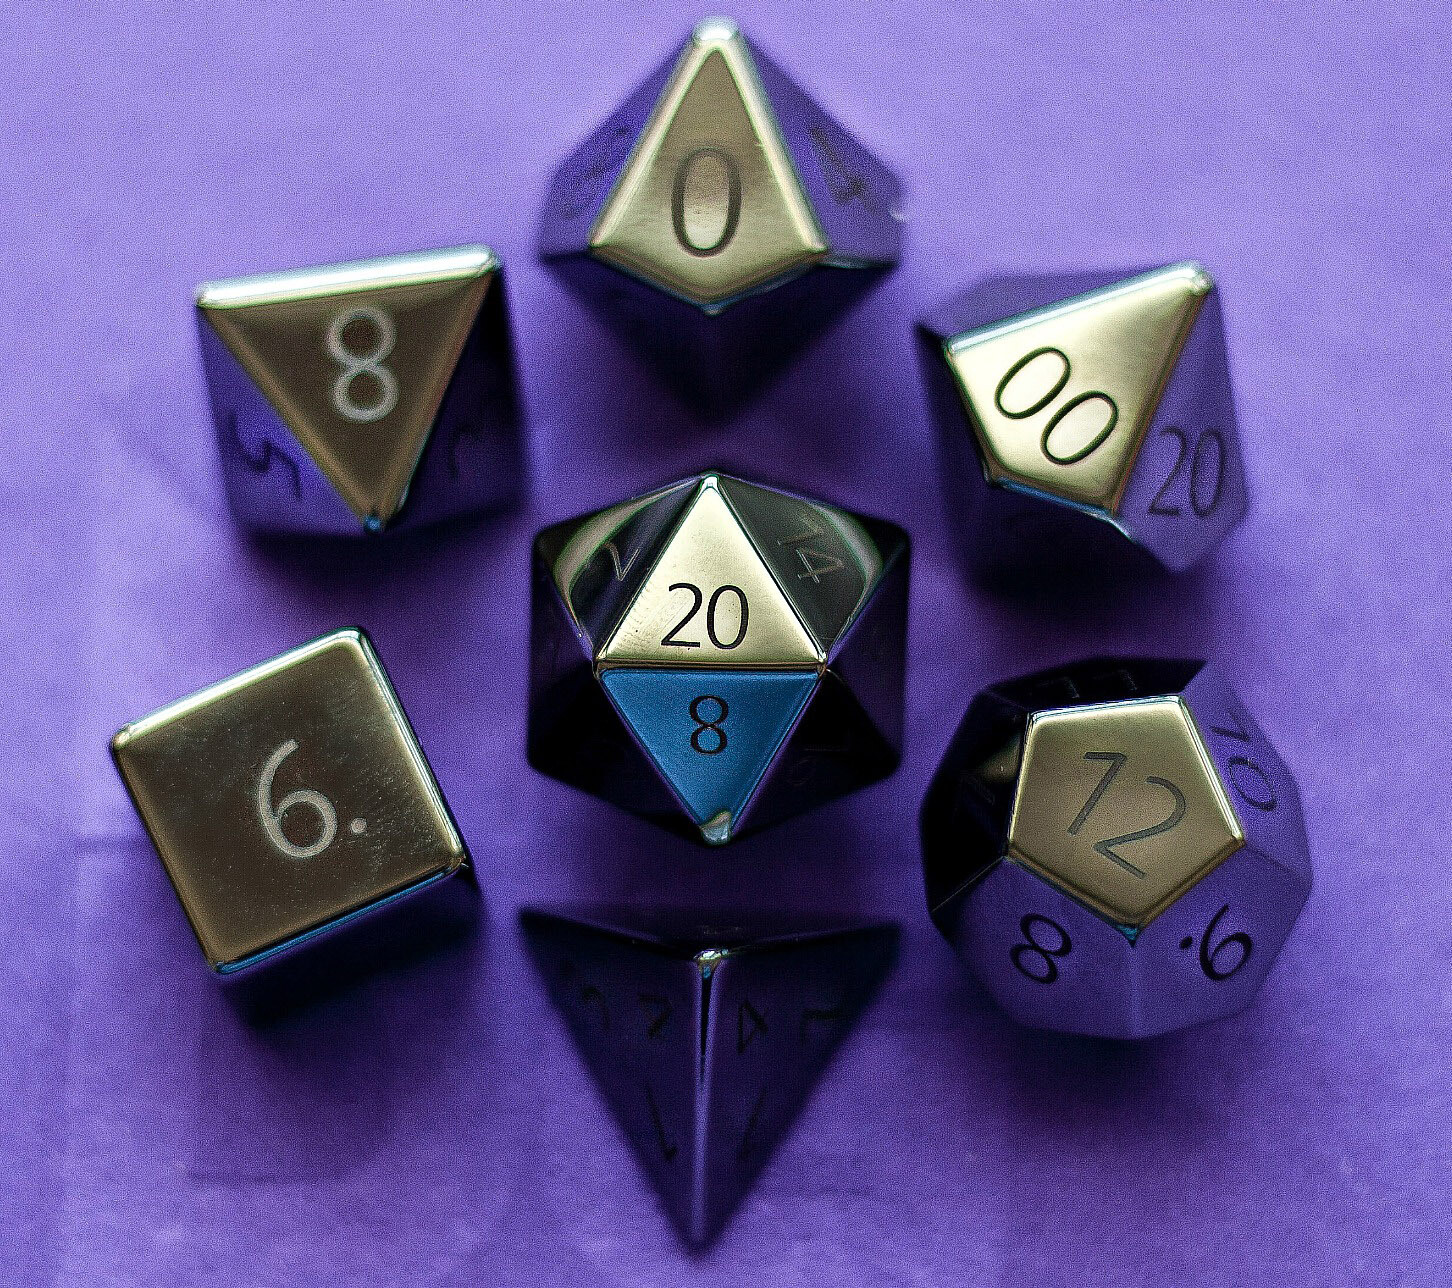 Engraved Hematite: Full-Sized 16mm Polyhedral Dice Set RPG Tabletop Gaming Games